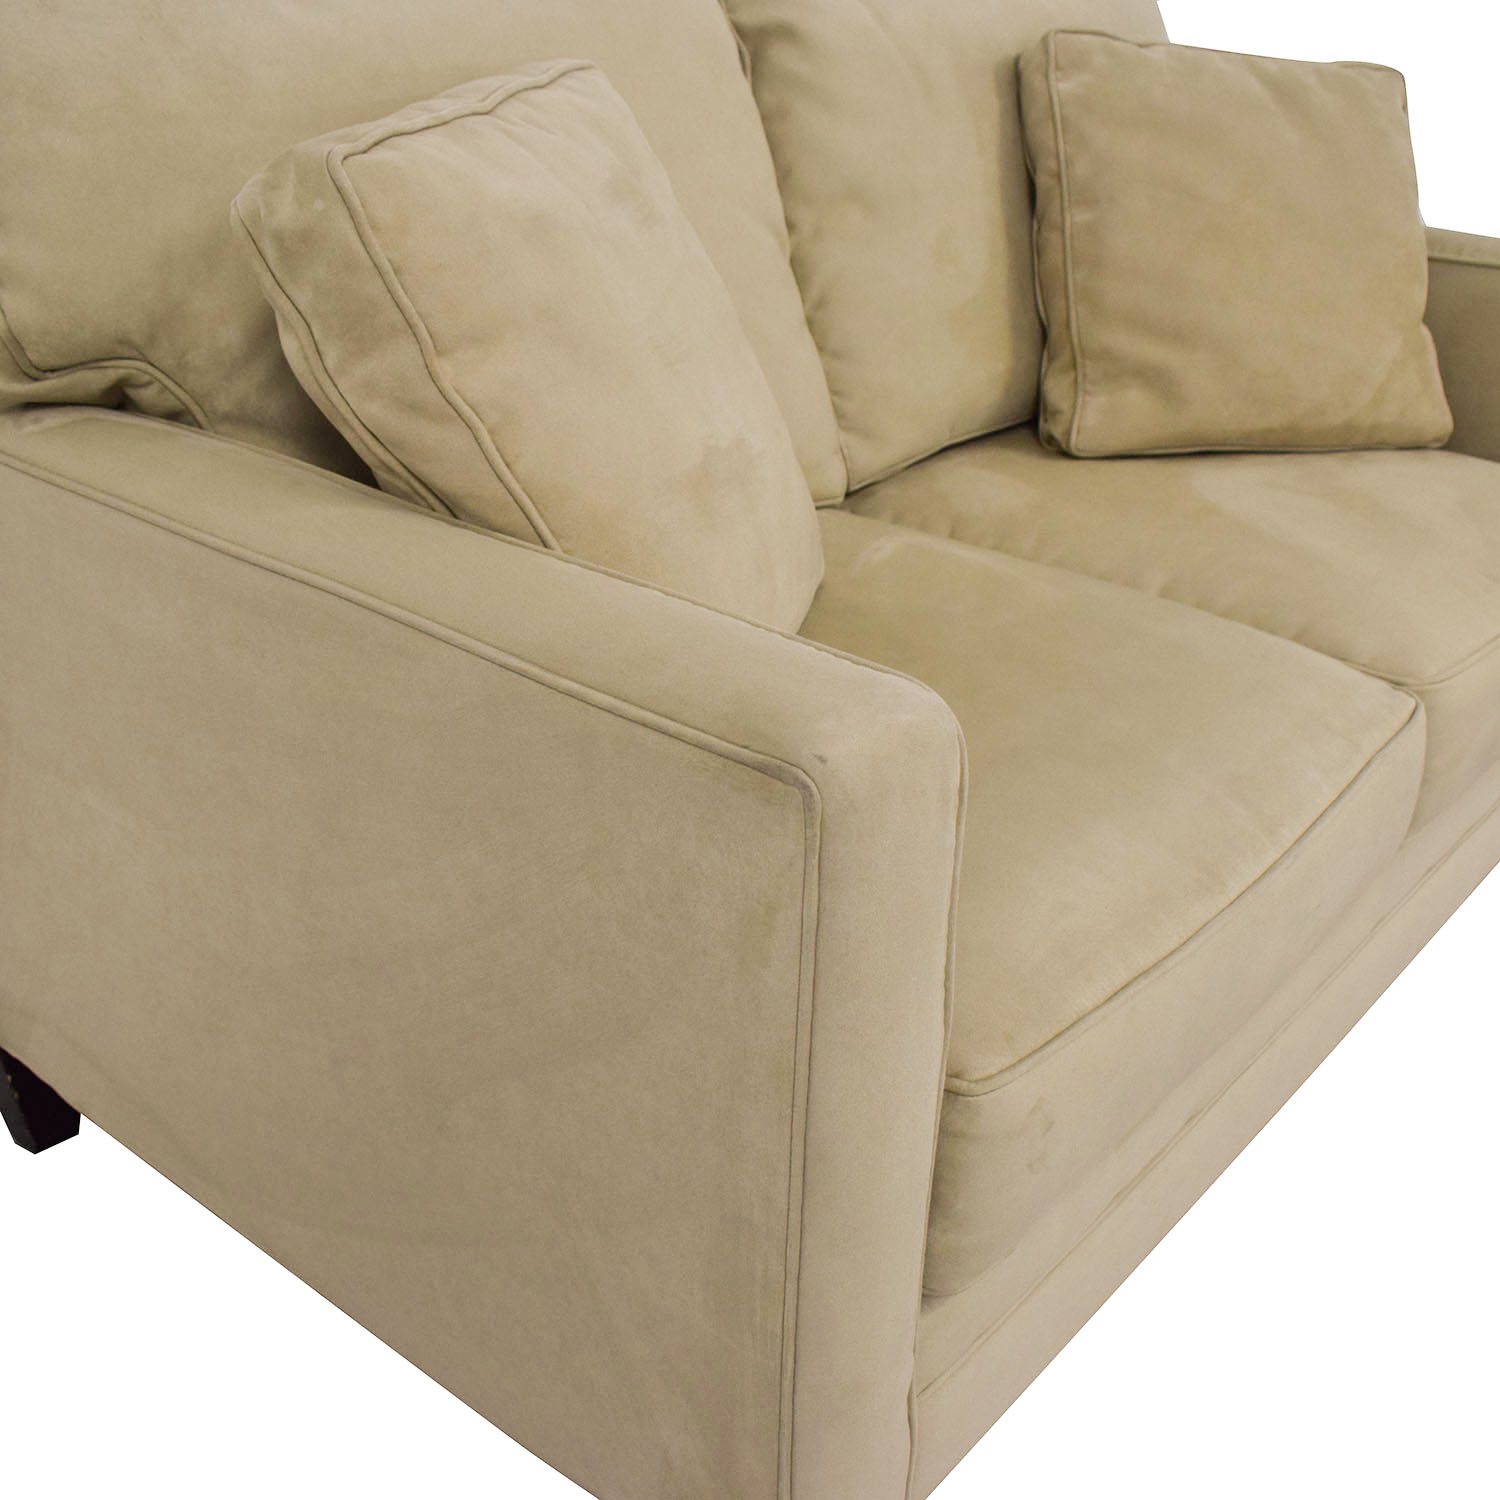 Bauhaus Furniture Bauhaus Furniture Suede Loveseat coupon